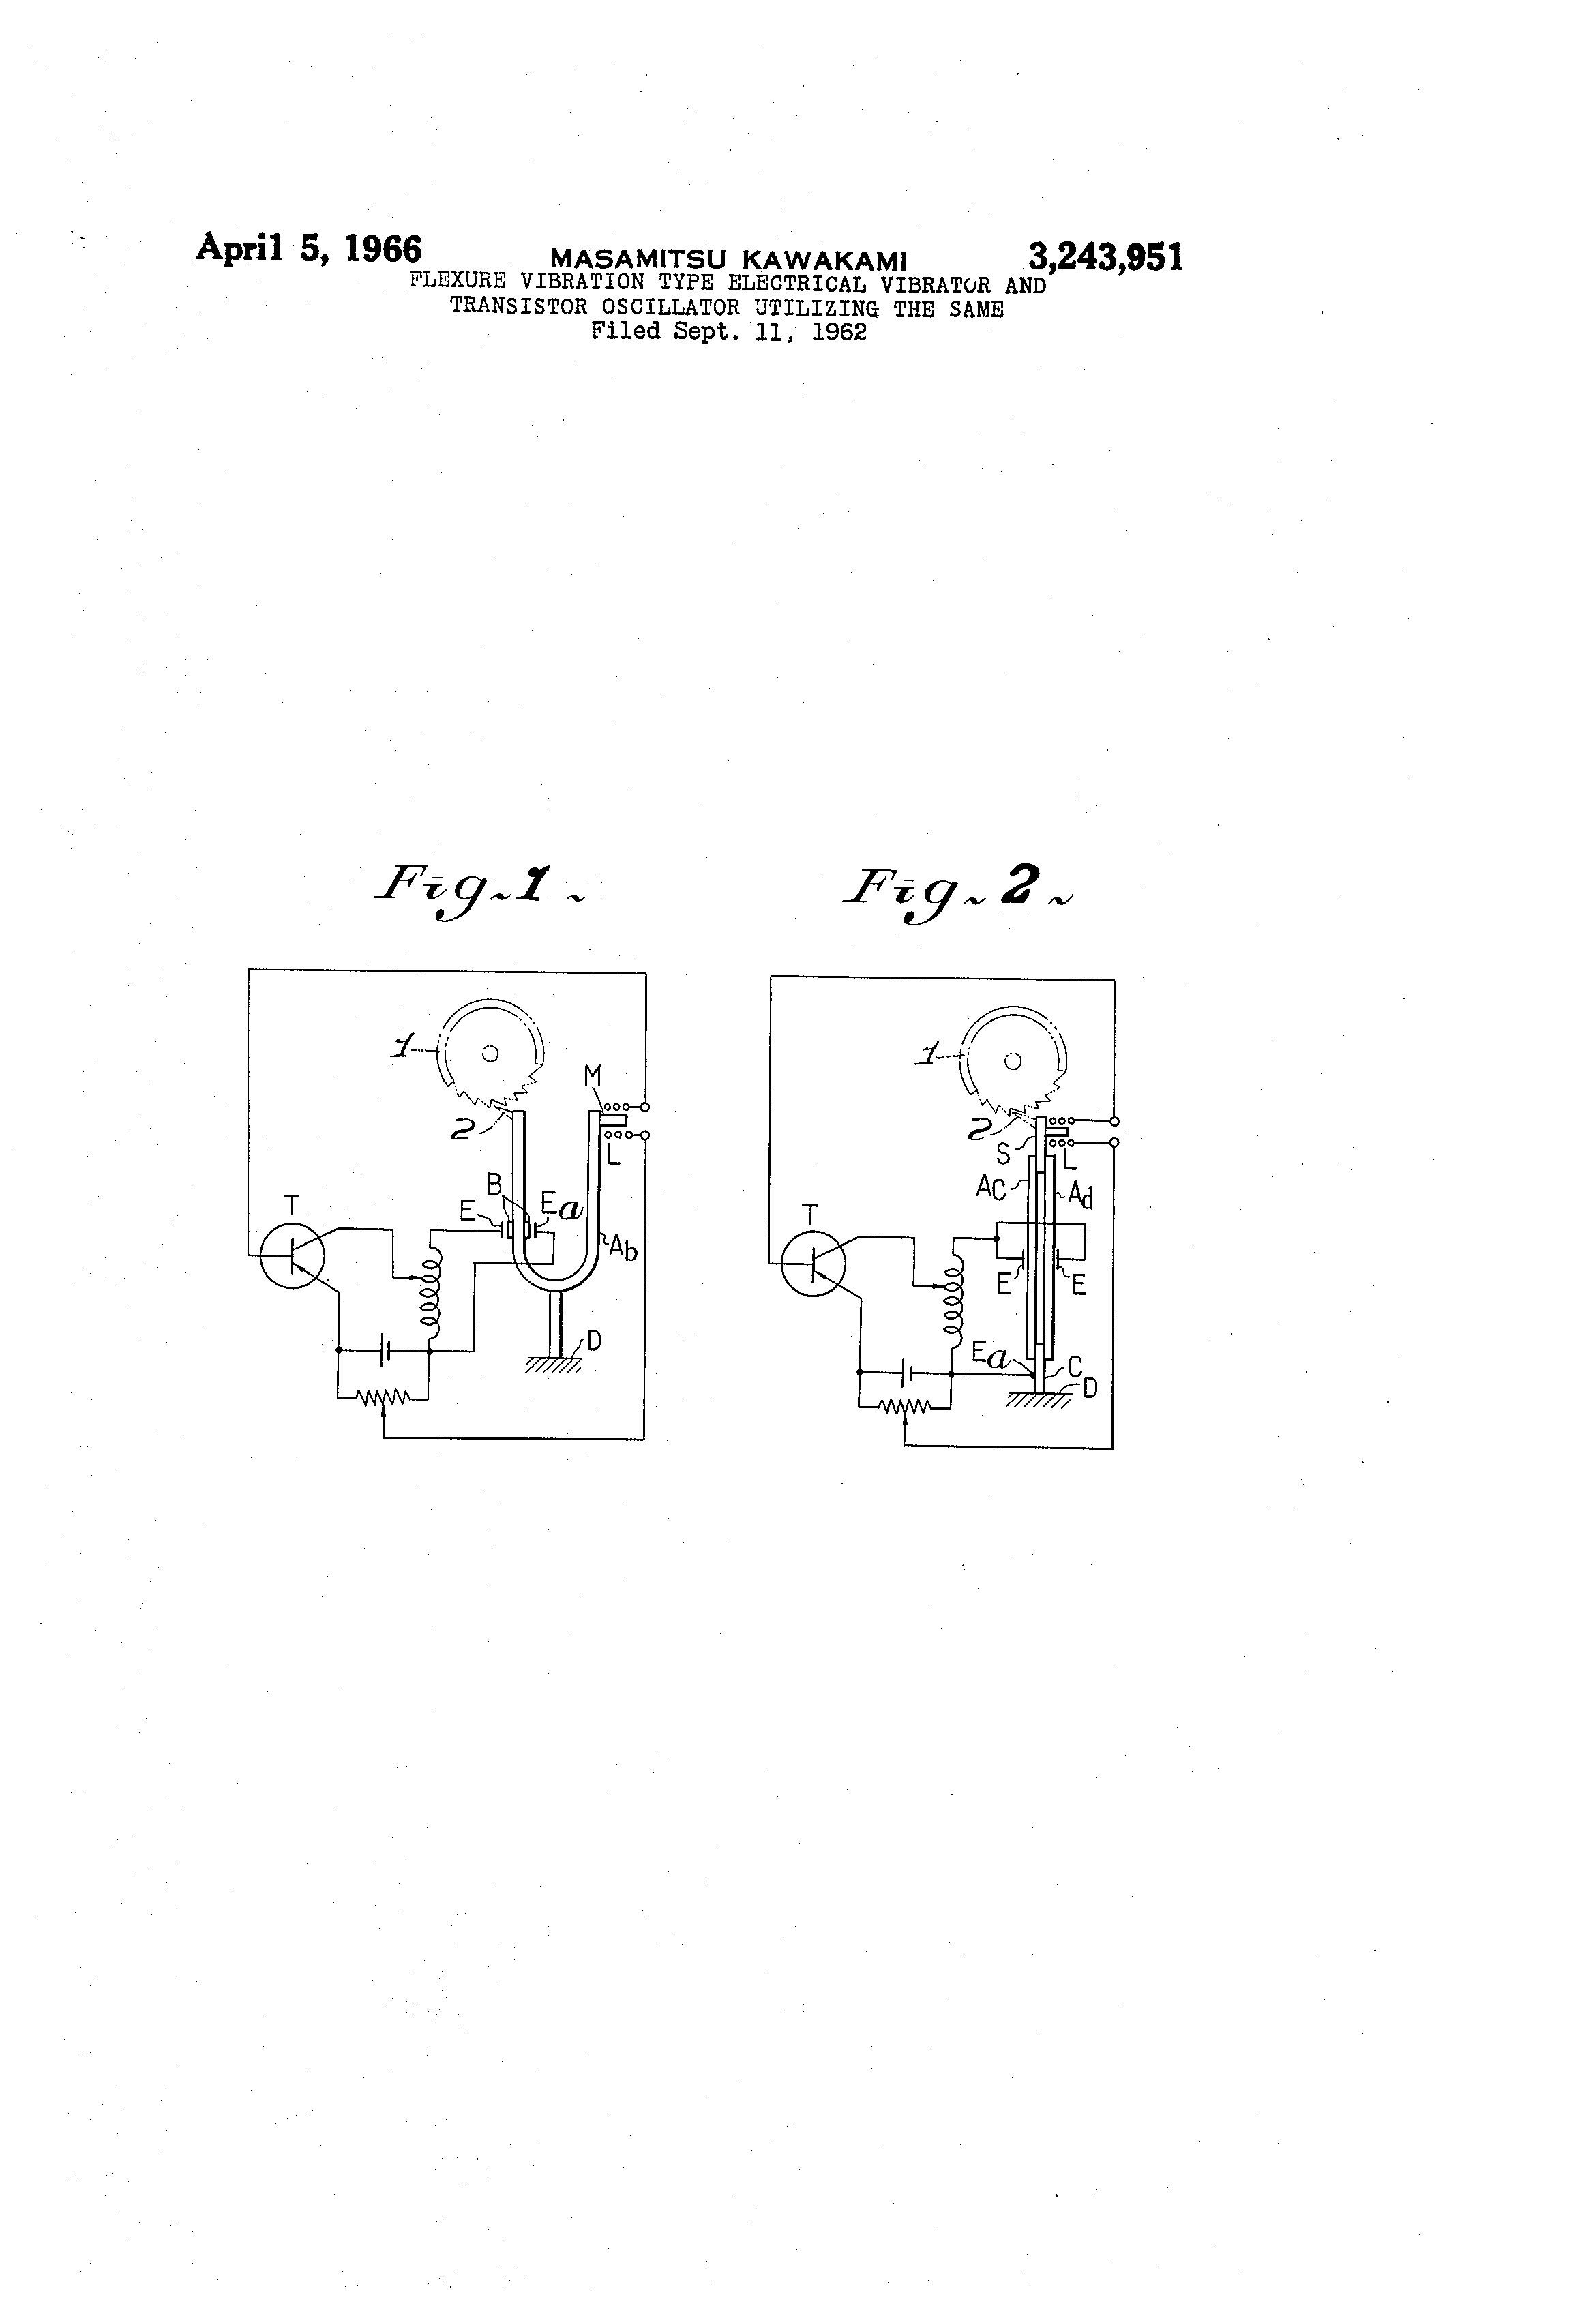 Us3243951 Flexure Vibration Type Electrical Transistor Oscillators Patent Drawing